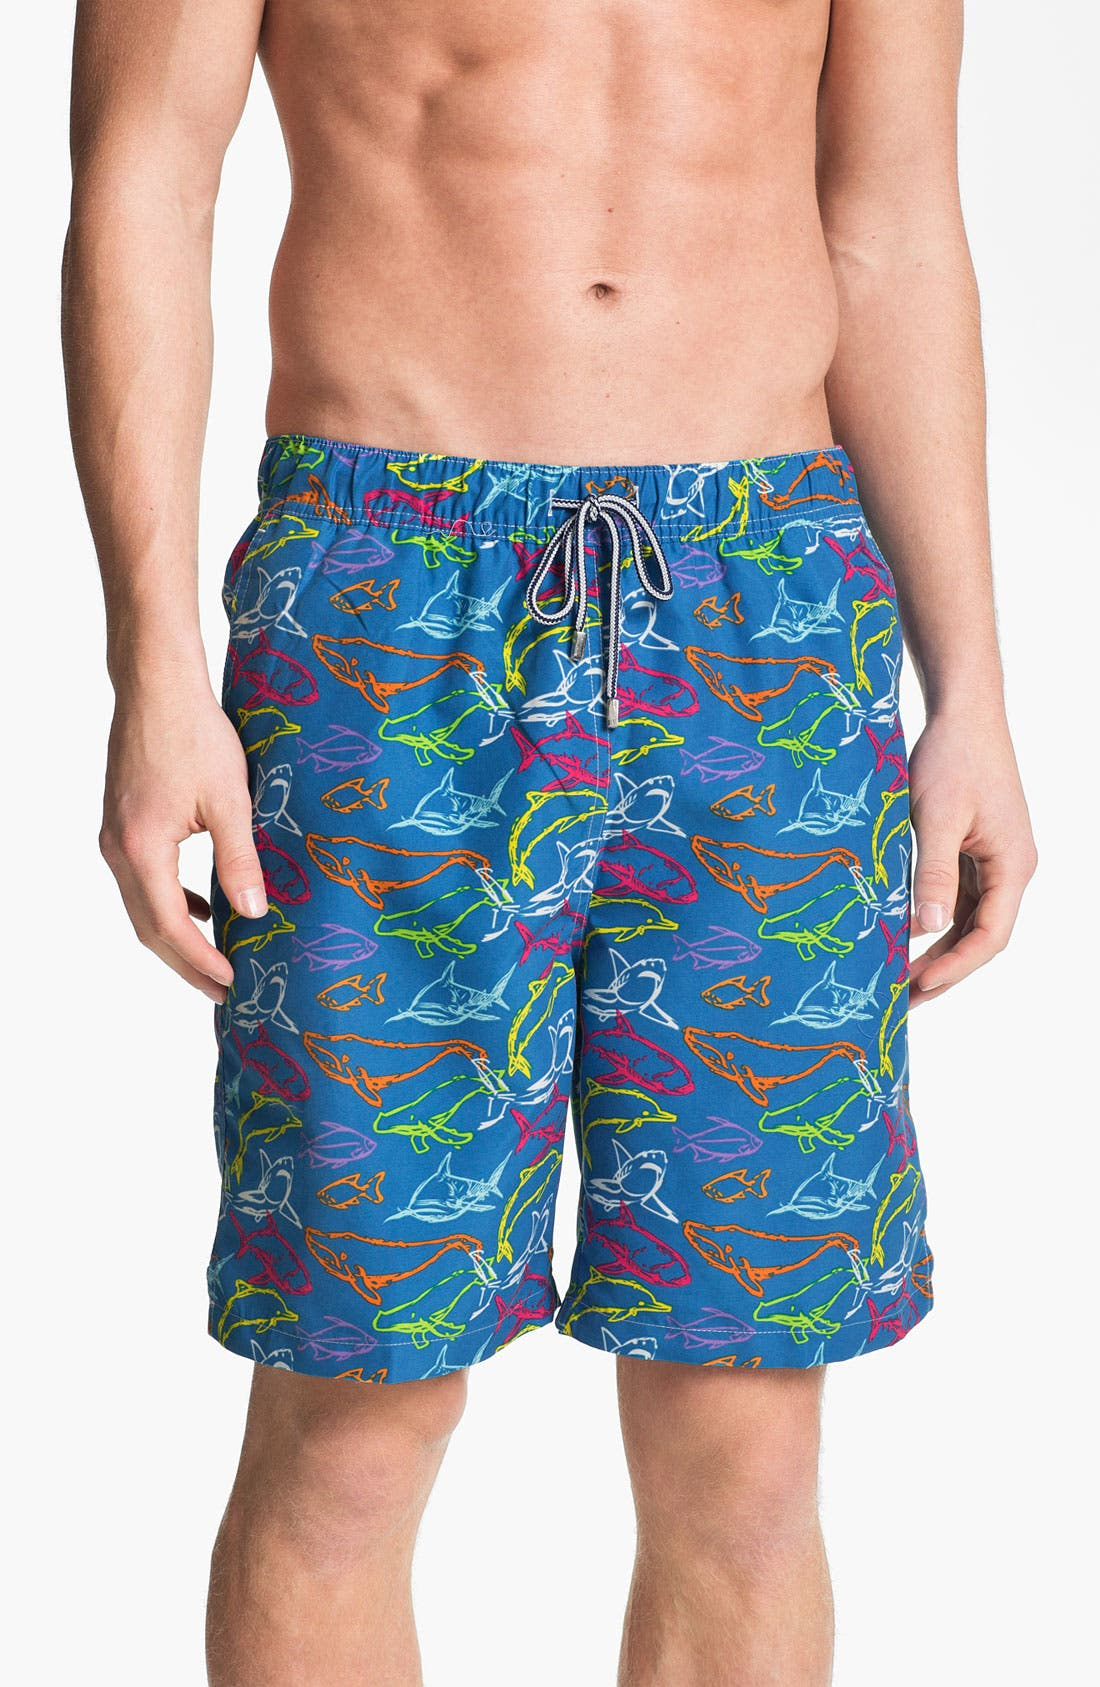 Alternate Image 1 Selected - Peter Millar 'Under the Sea' Swim Trunks